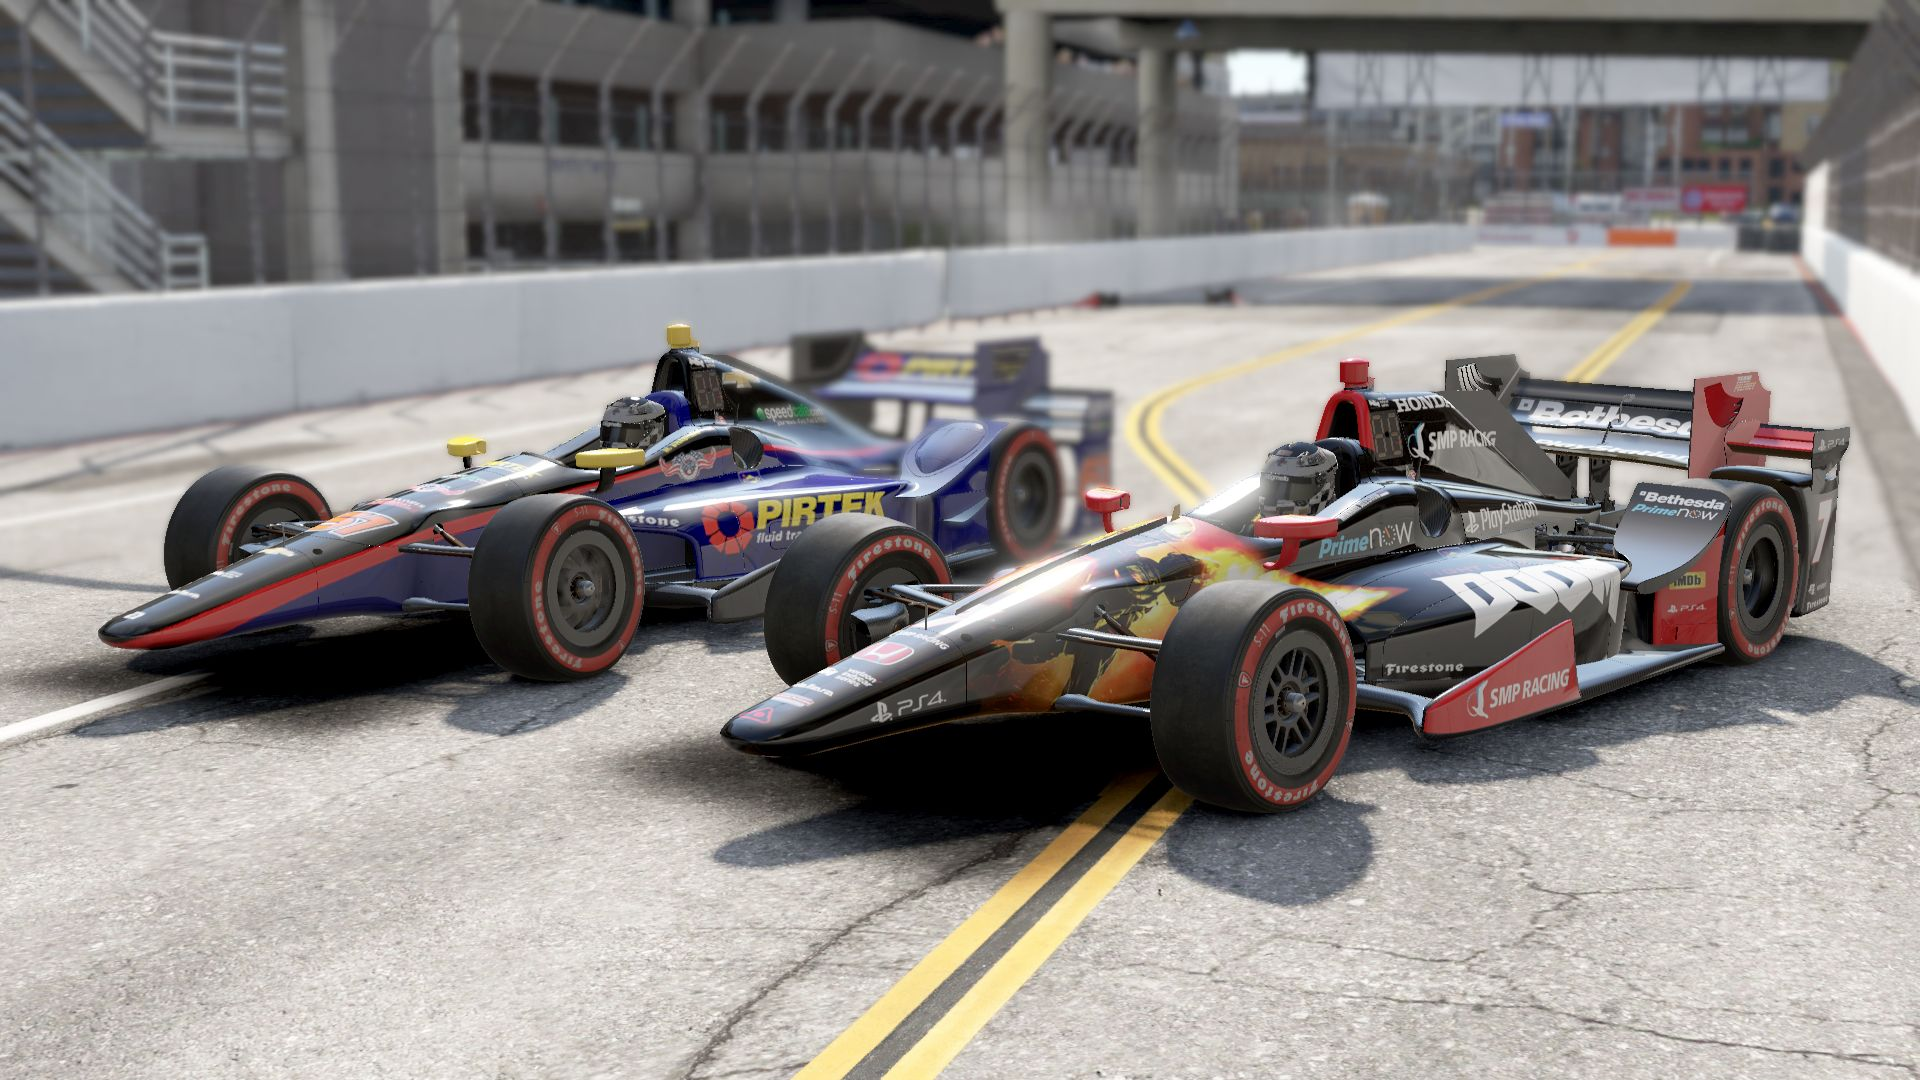 how to start project cars 2 on pc